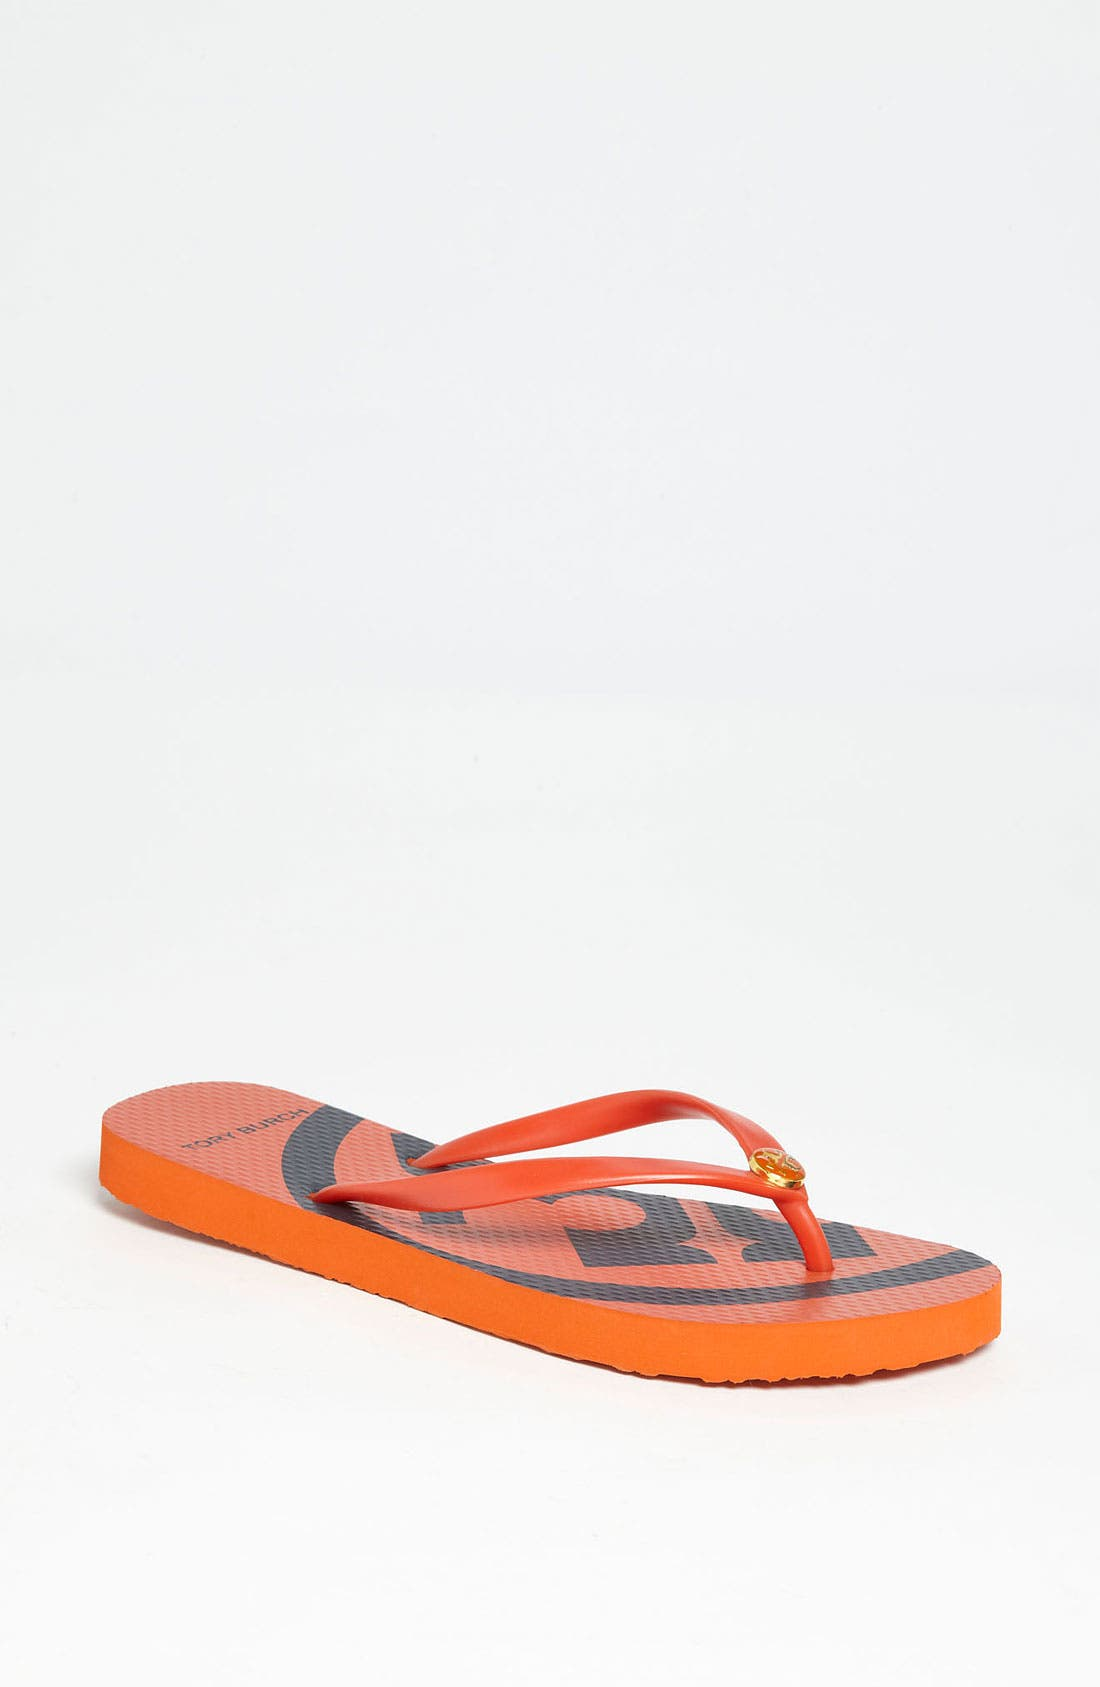 Main Image - Tory Burch 'Emory' Flip Flop